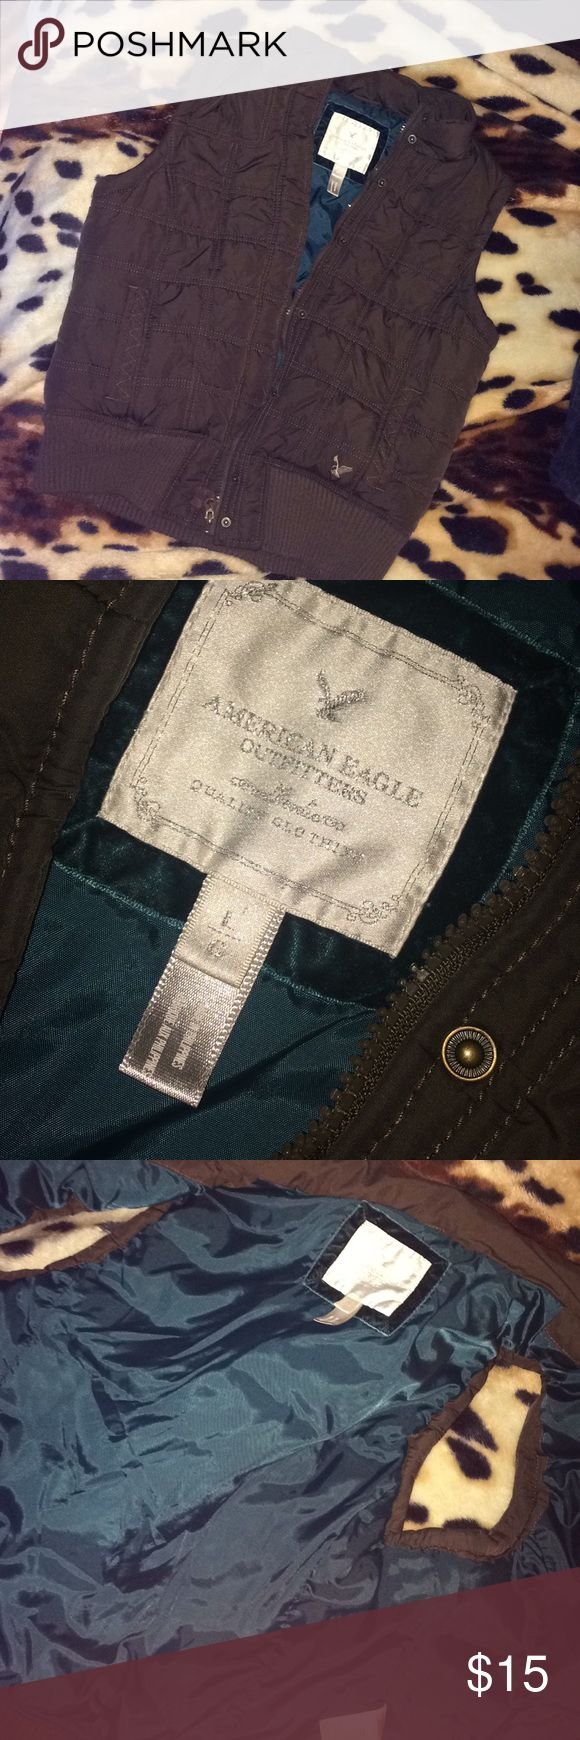 American eagle outfitters puffy vest Hood is missing other wise great condition, gently worn! Size large. Brown with teal blue inlay! American Eagle Outfitters Jackets & Coats Puffers